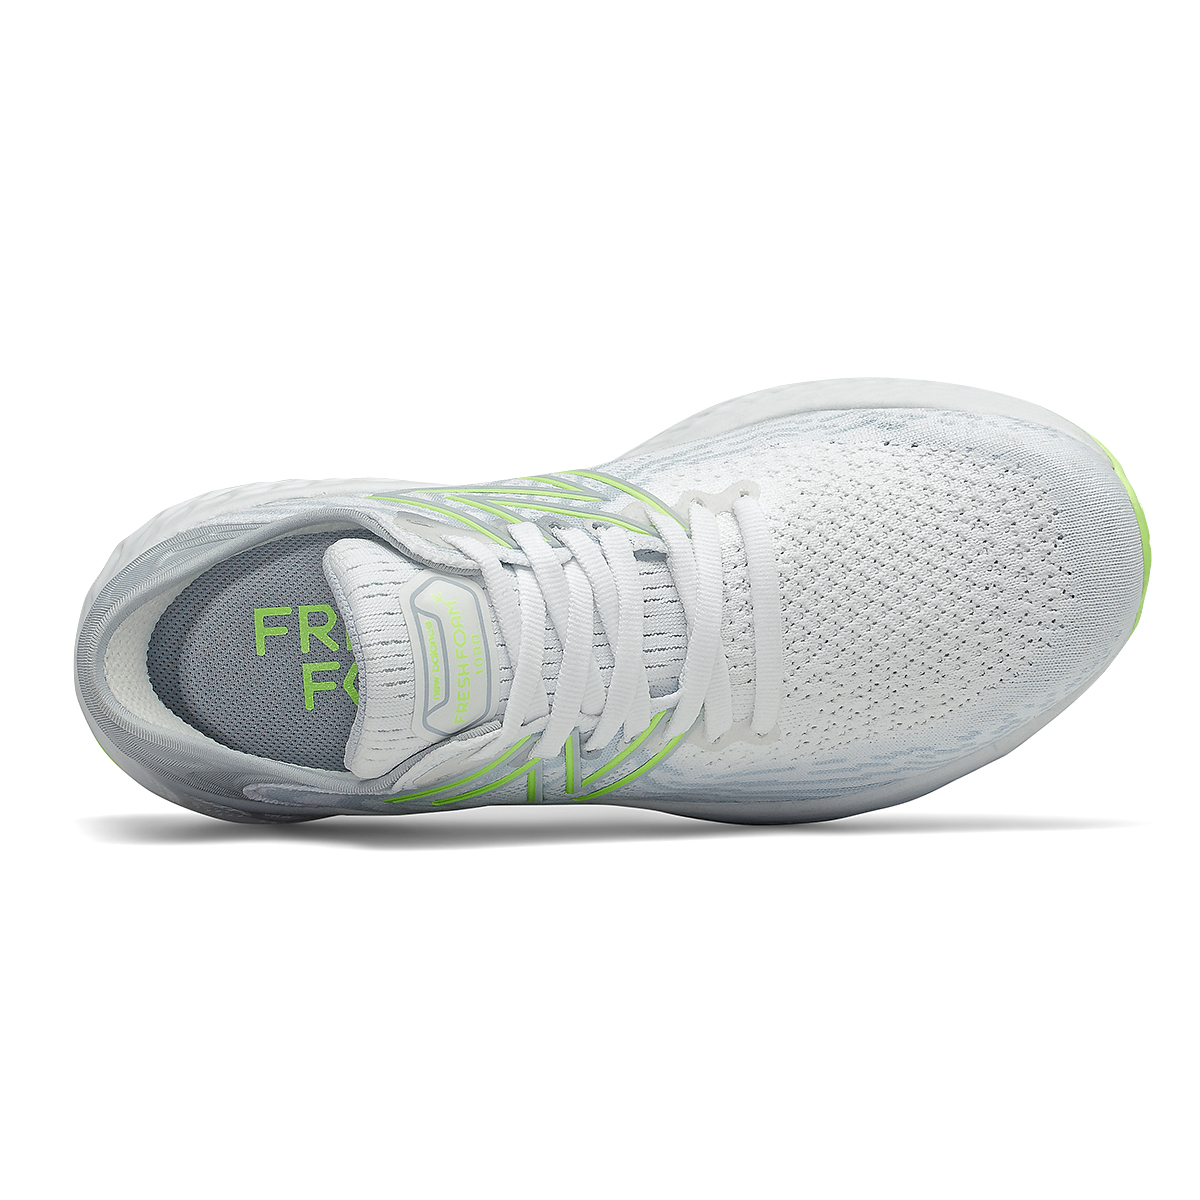 Women's New Balance 1080v11 Running Shoe - Color: White/Bleached Lime Glo - Size: 5 - Width: Narrow, White/Bleached Lime Glo, large, image 4